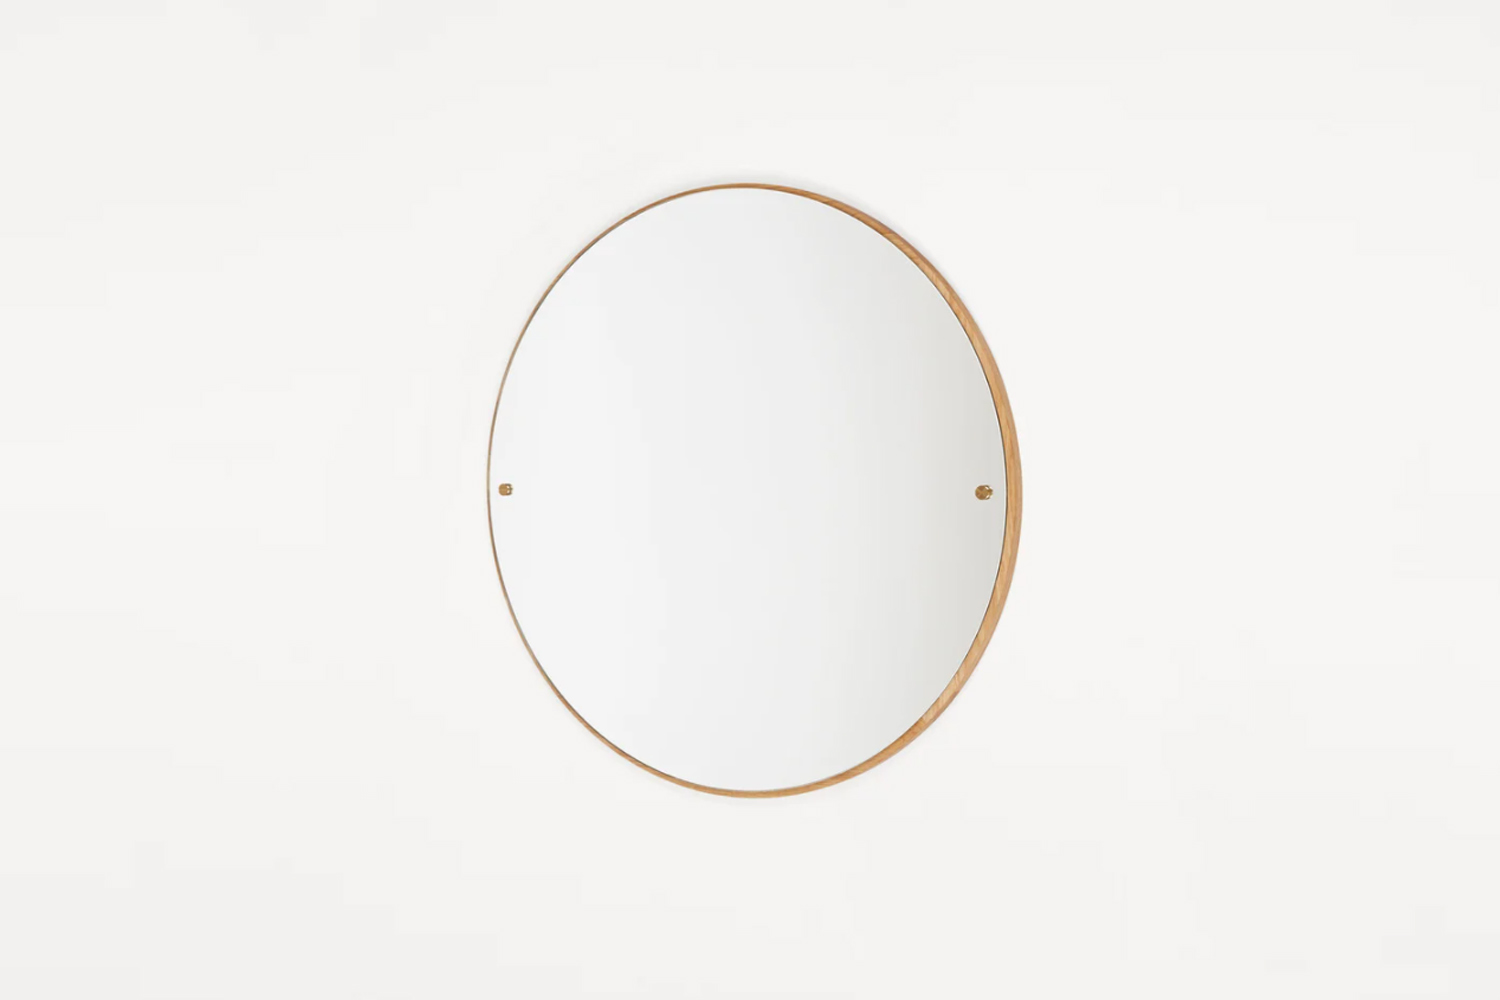 10 Easy Pieces Simple Round Mirrors The Frama CM \1 Circle Mirror is designed with an oak rim and brass screws; €385 at Frama.